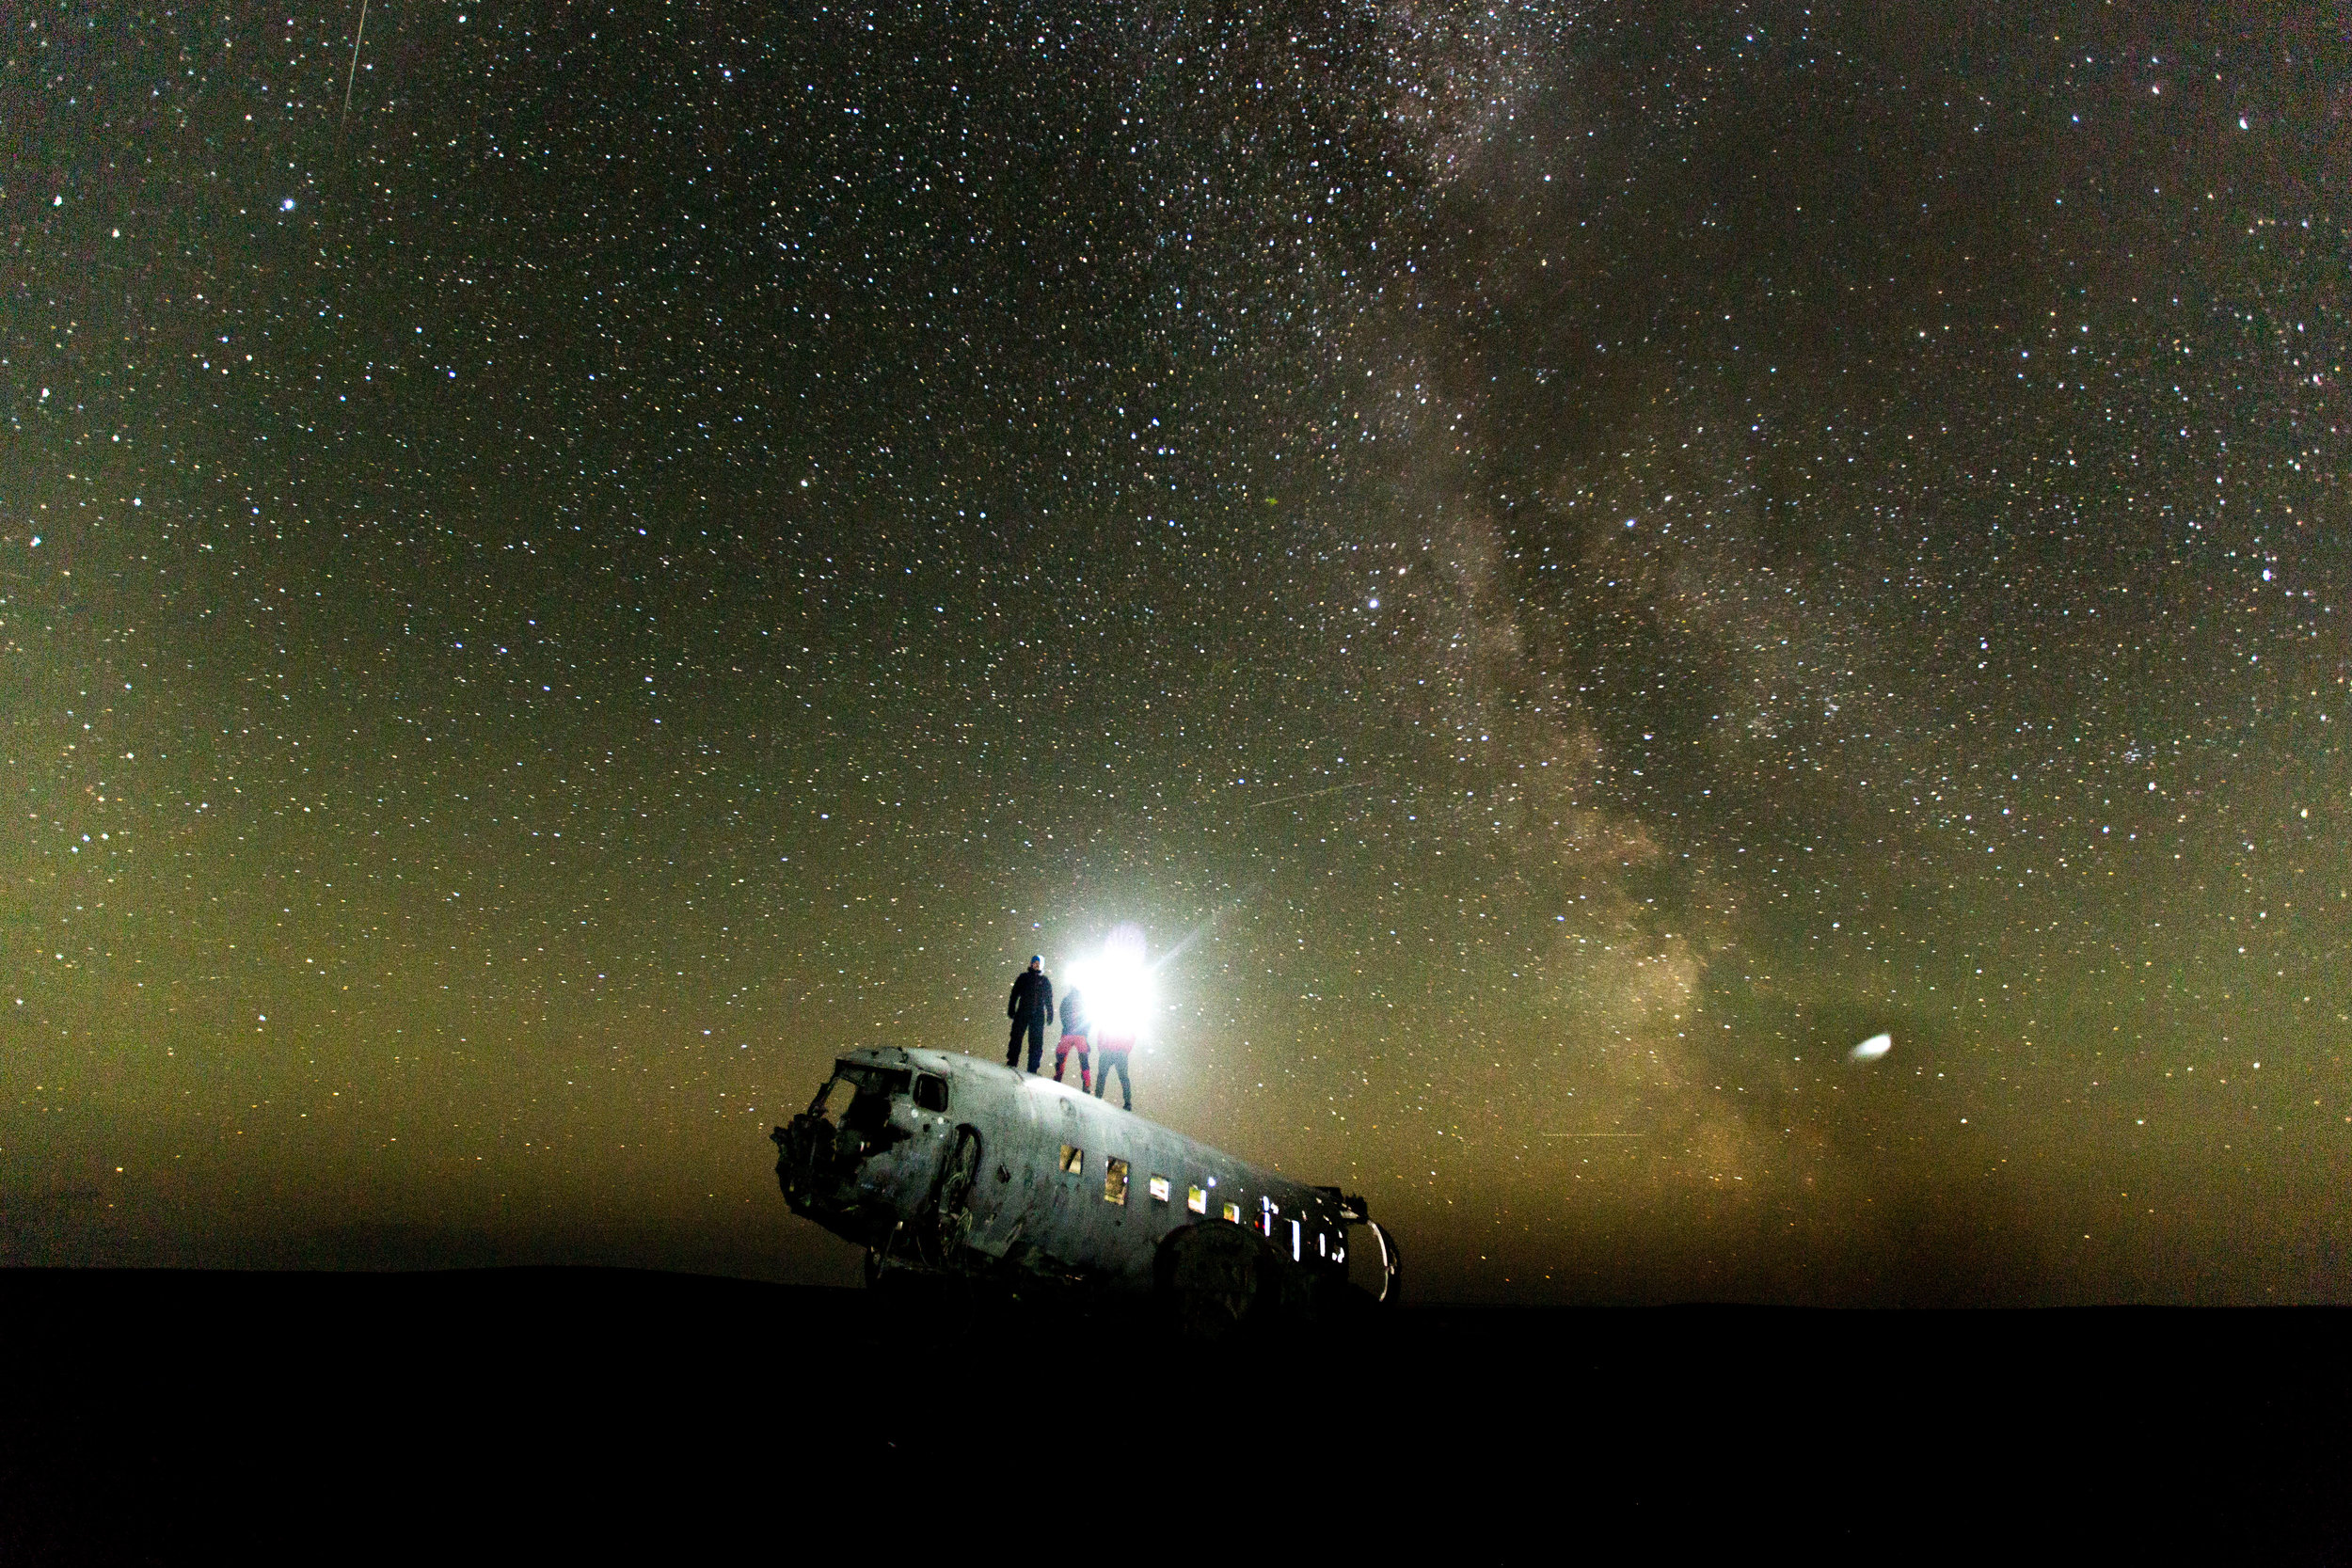 Plane Wreck by night